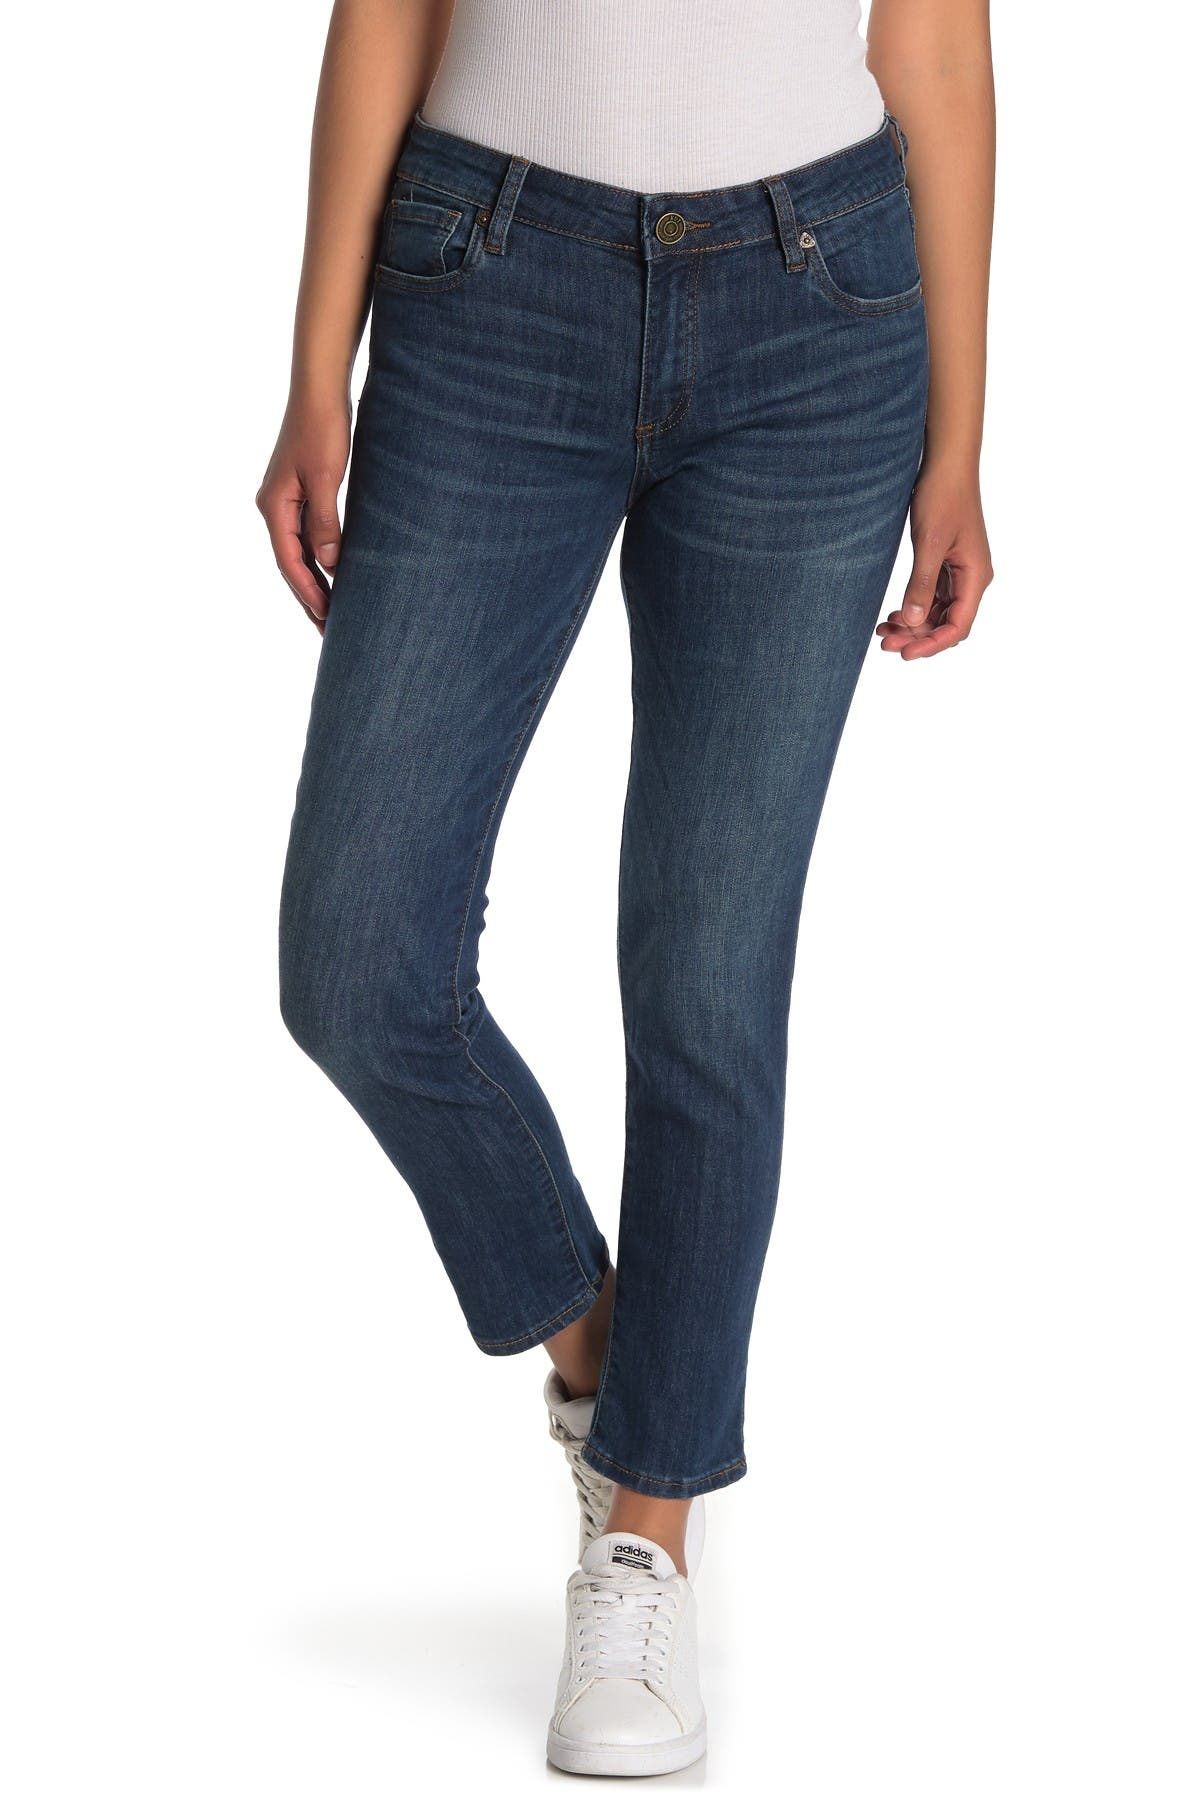 Image of KUT from the Kloth Carrie Rolled Boyfriend Jeans